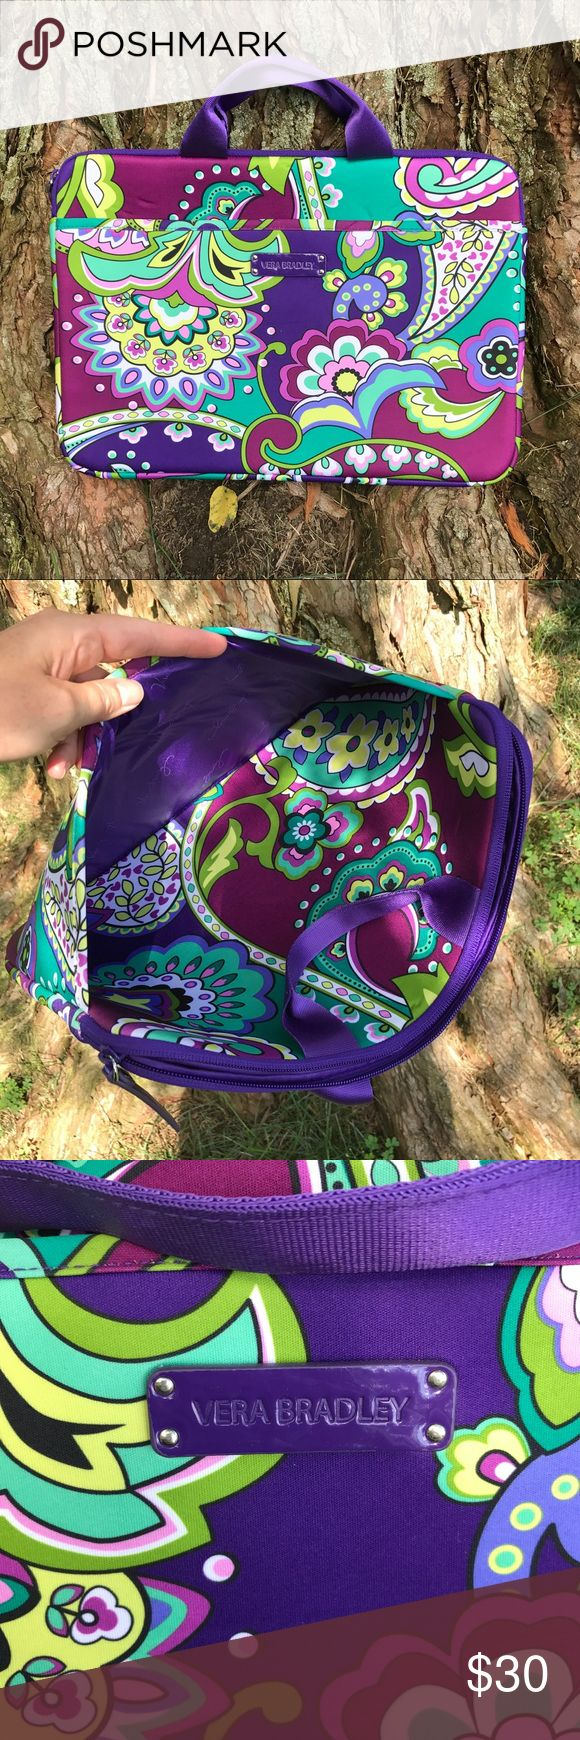 NWOT Vera Bradley Laptop Case Zipper closure w/ additional outside pocket. Tags removed but never used. Neoprene. Vera Bradley Bags Laptop Bags